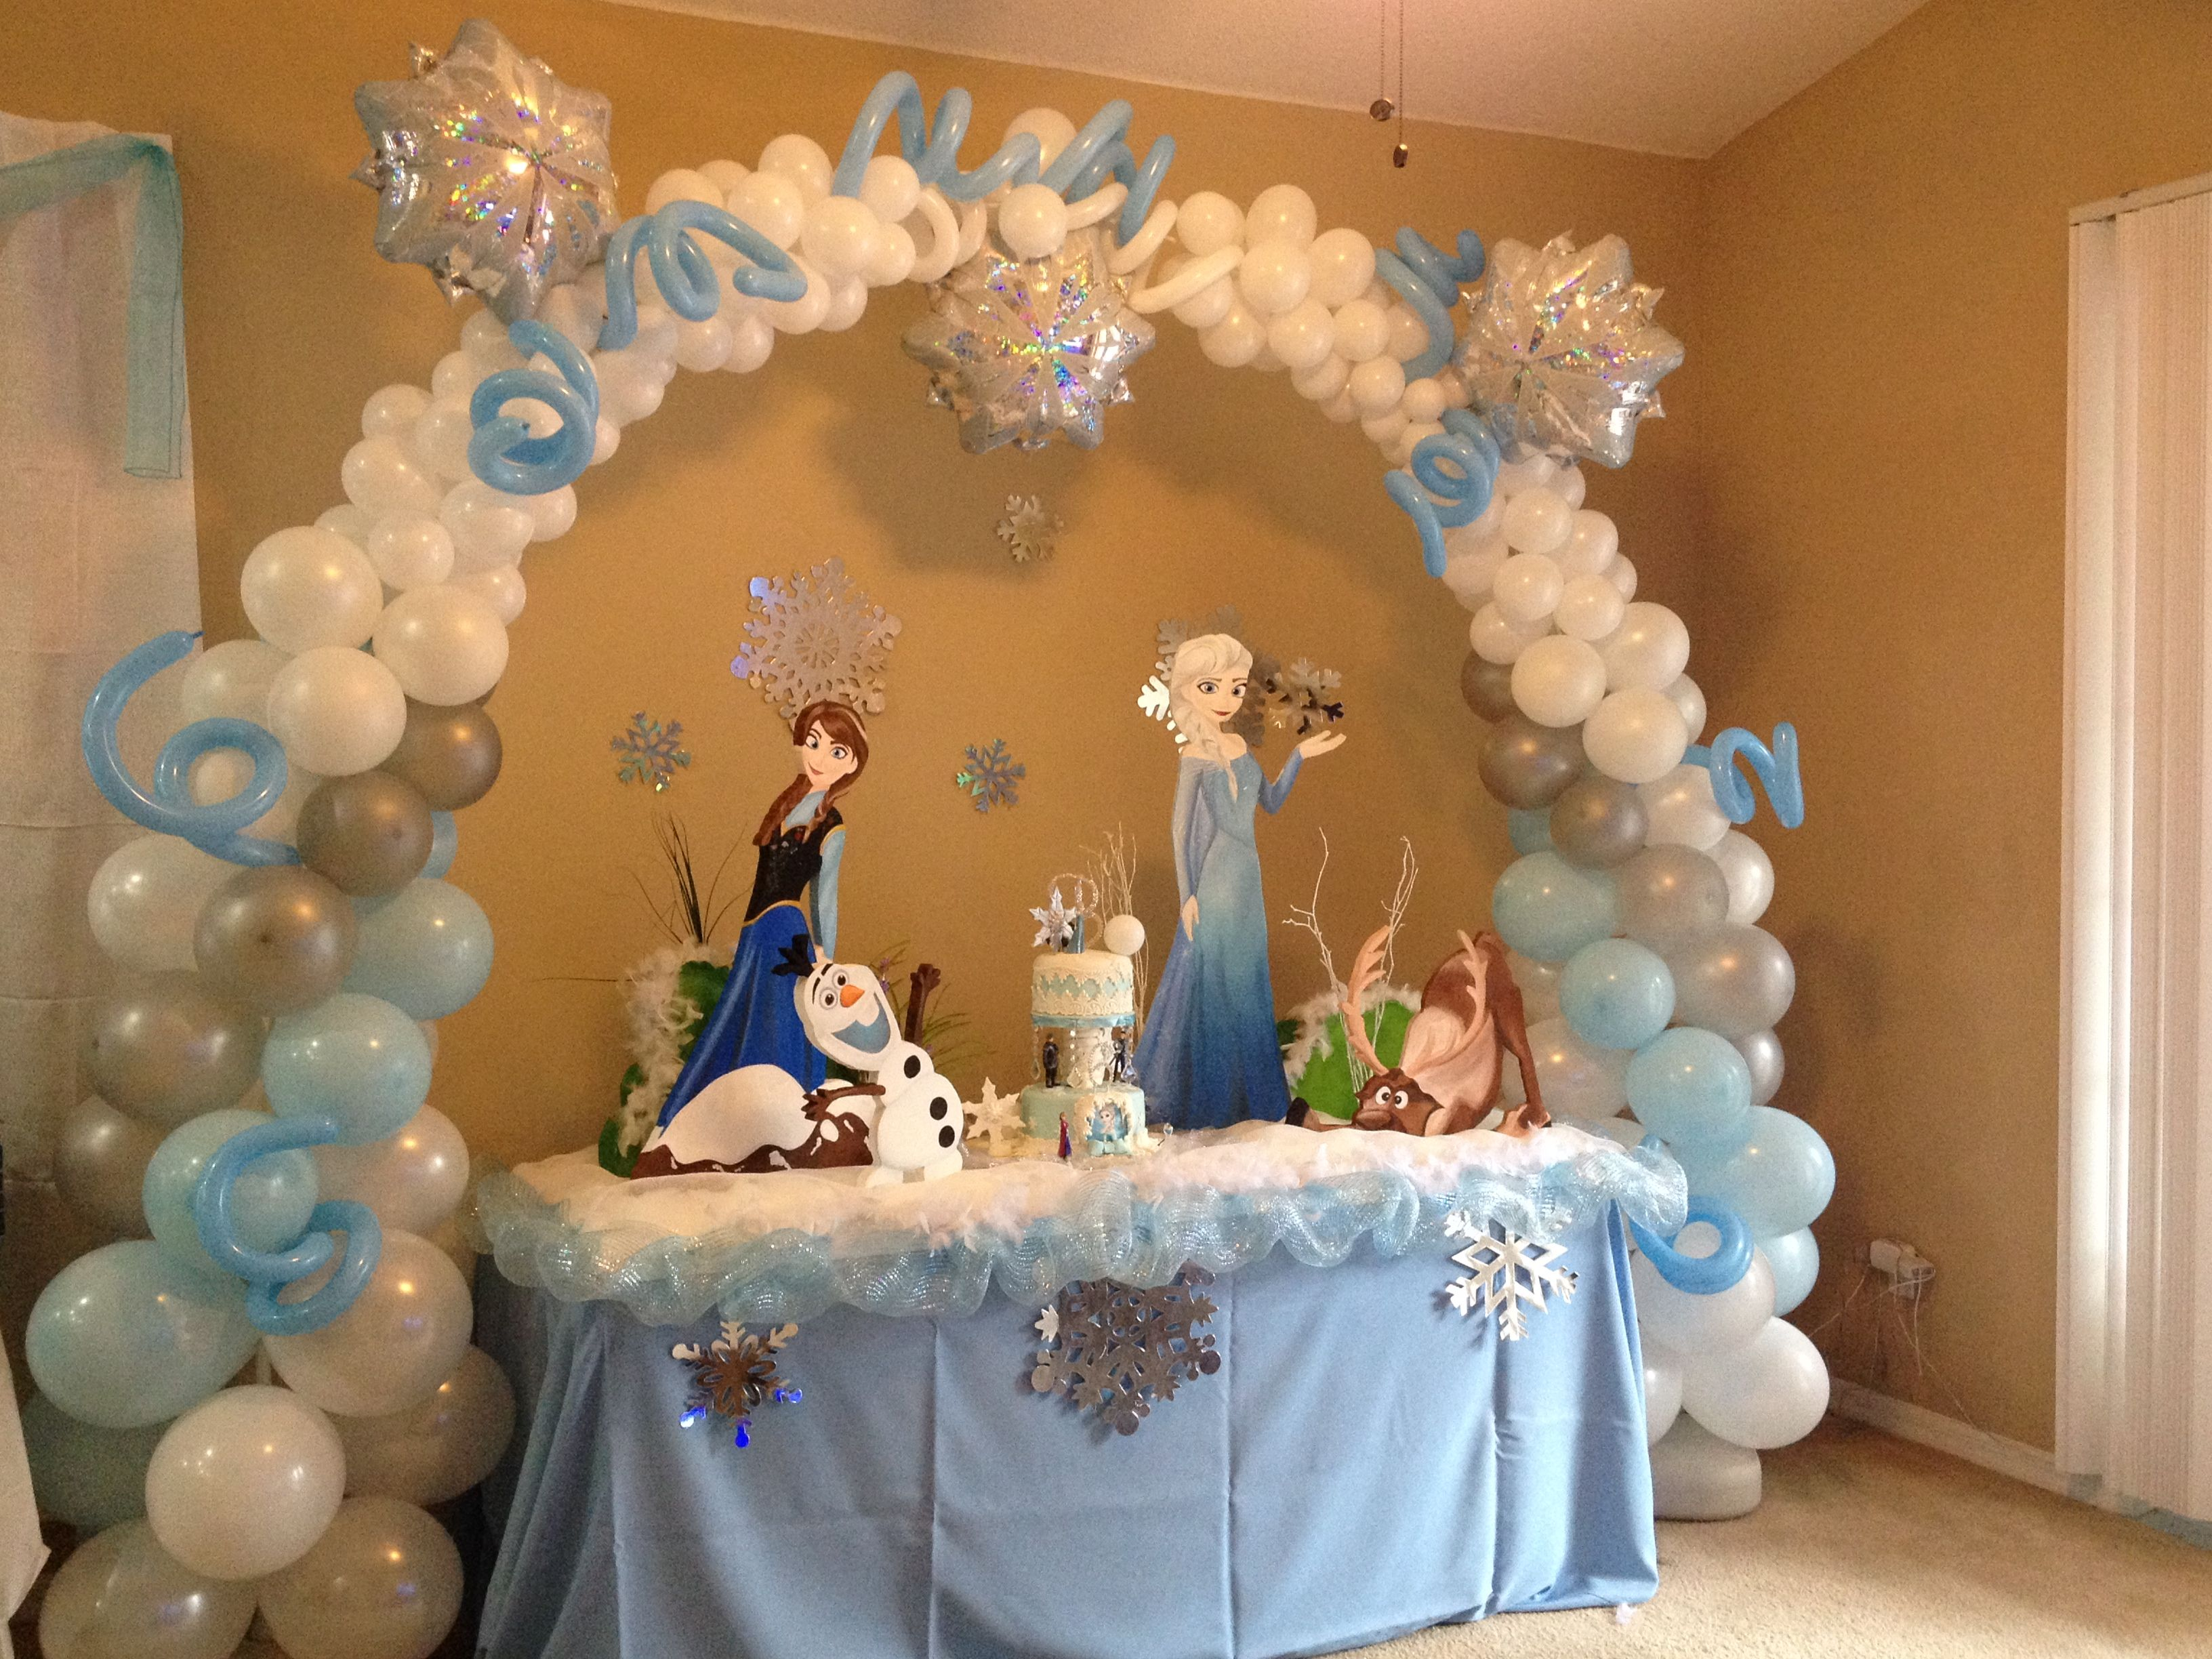 swing chair toronto bedroom olx lahore frozen party ideas on pinterest | disney, birthday centerpieces and balloon ...